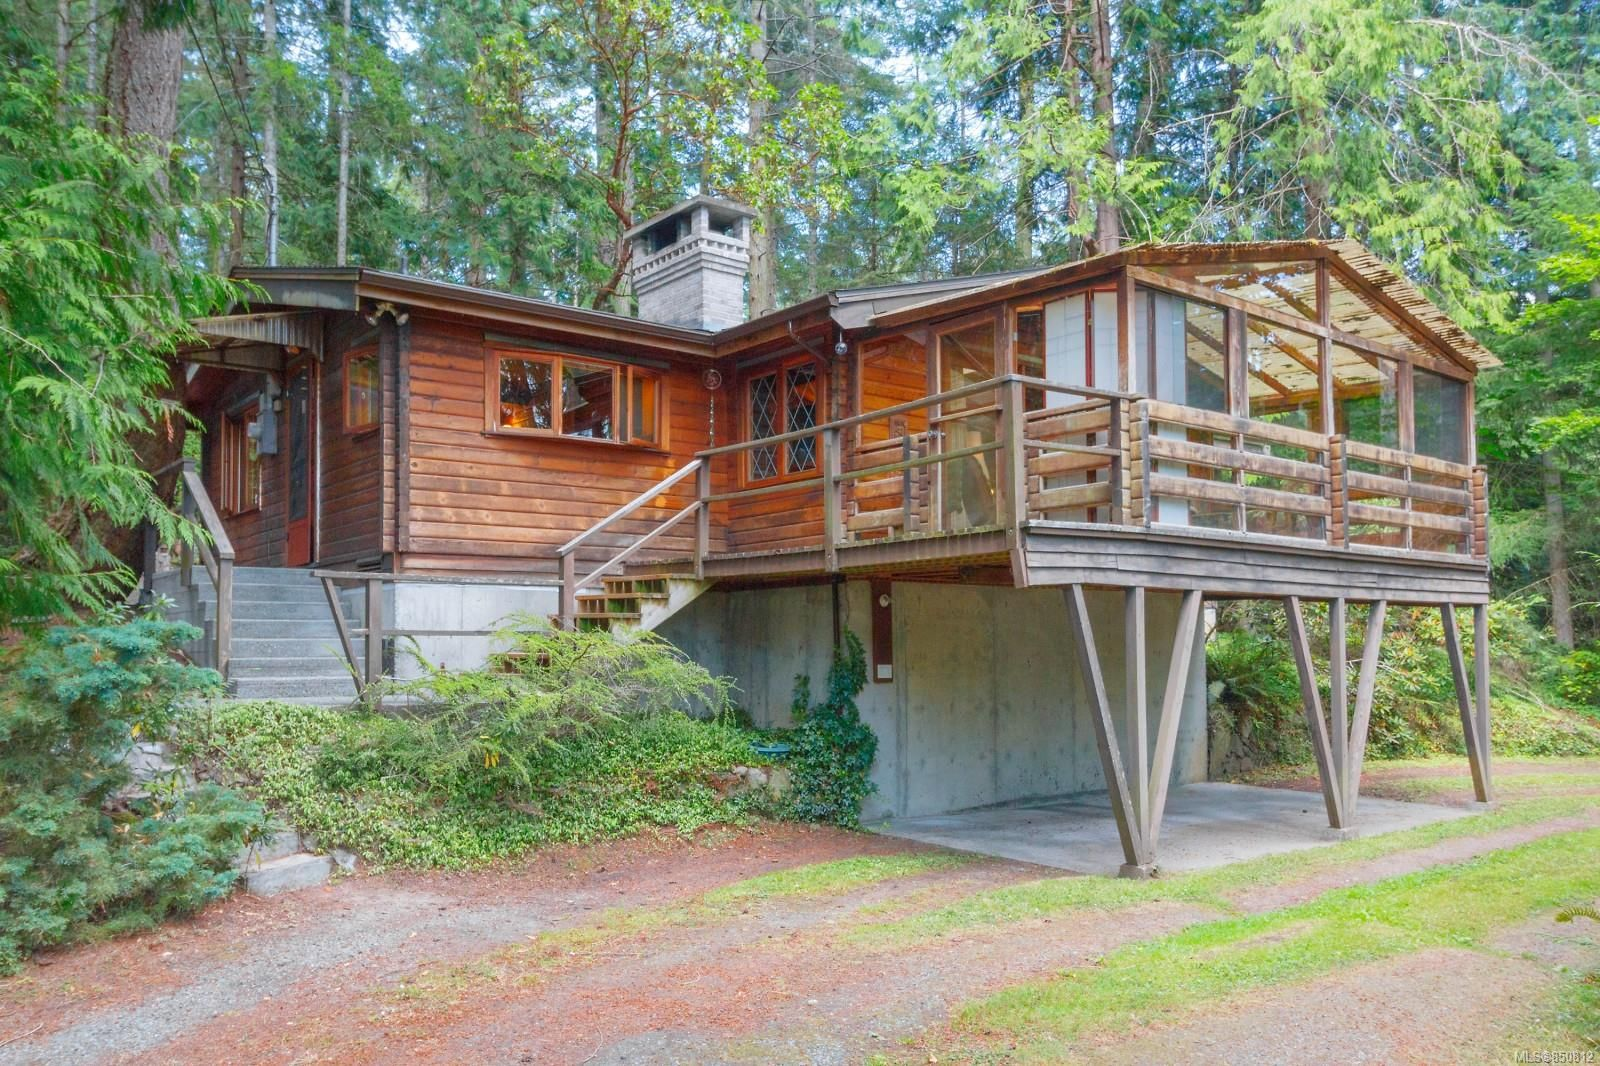 Main Photo: 2180 Curteis Rd in : NS Curteis Point House for sale (North Saanich)  : MLS®# 850812